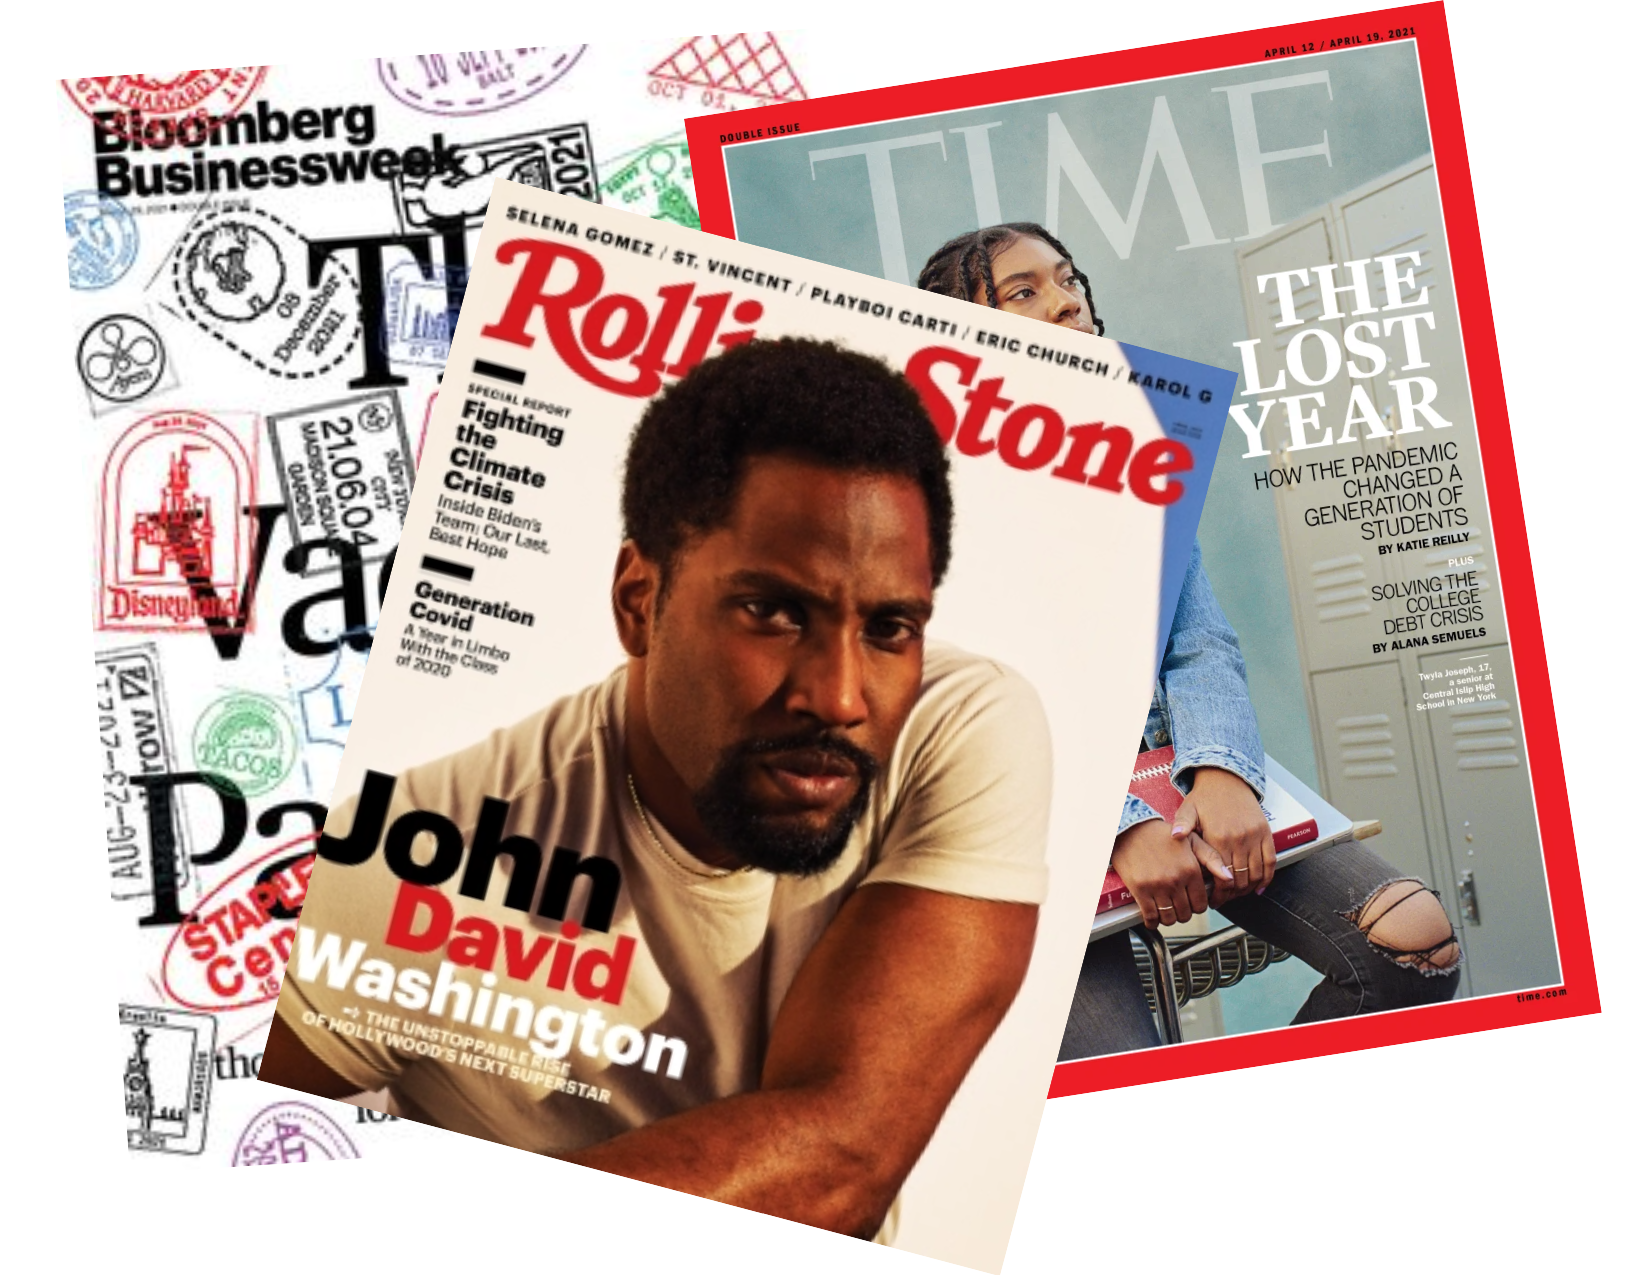 Popular Magazine covers: Bloomberg Businessweek, Rolling Stone, and TIME